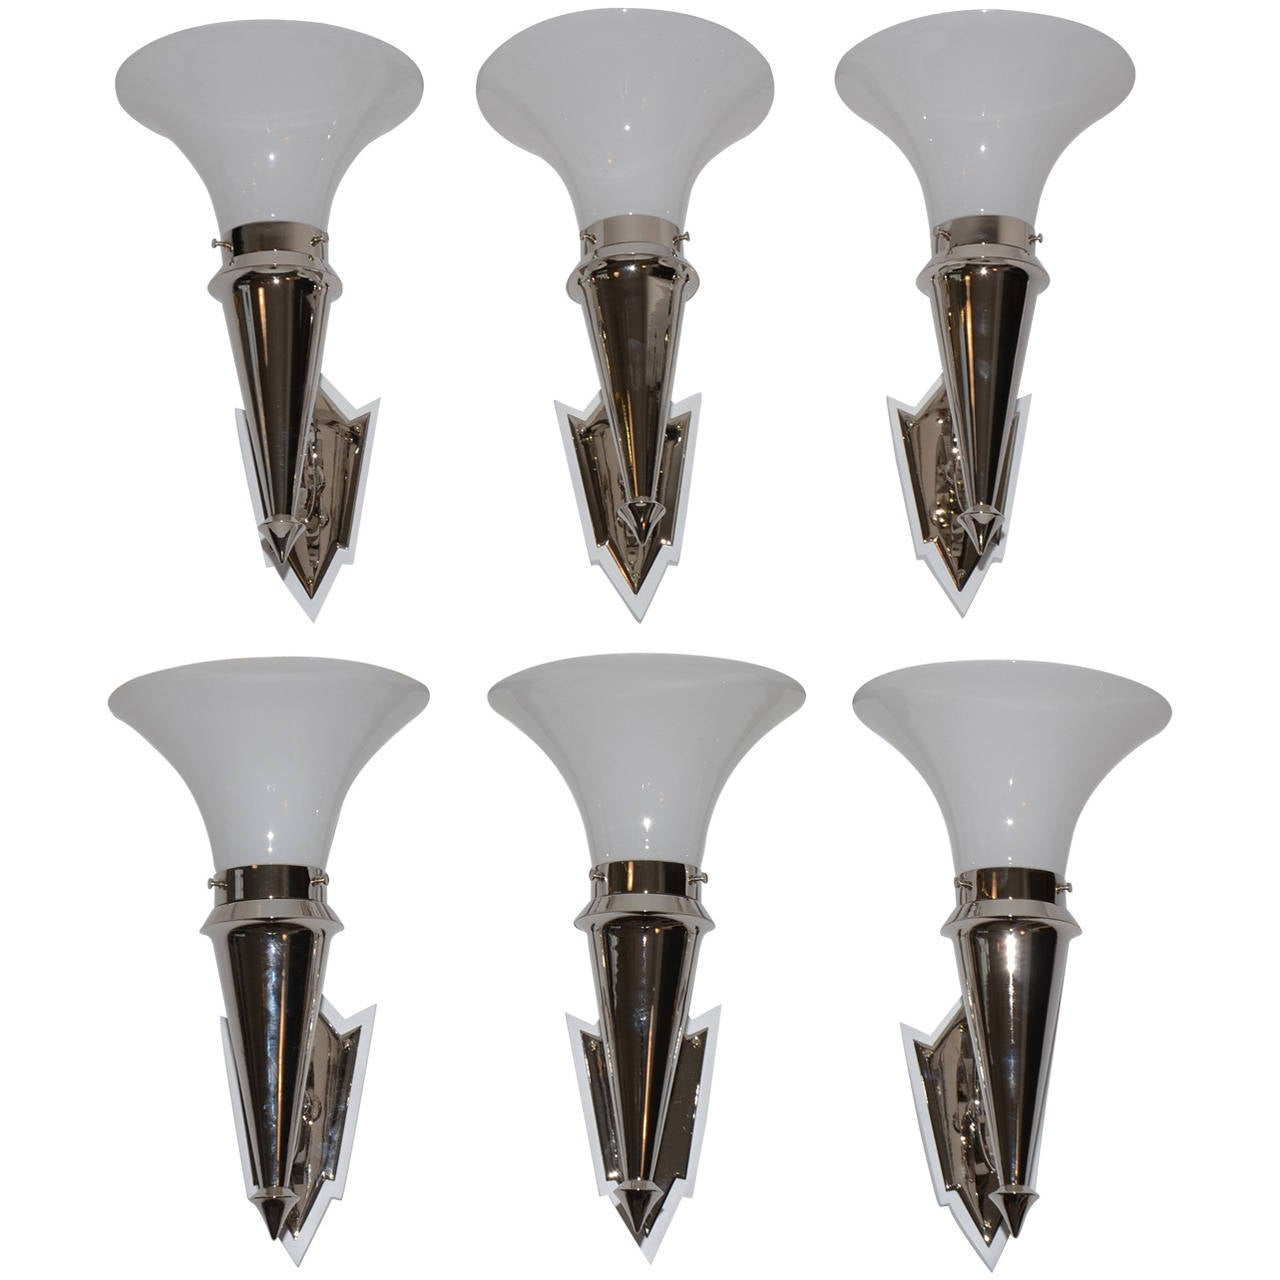 Wall Lamp Art Deco : six art deco nickel wall lamps For Sale at 1stdibs